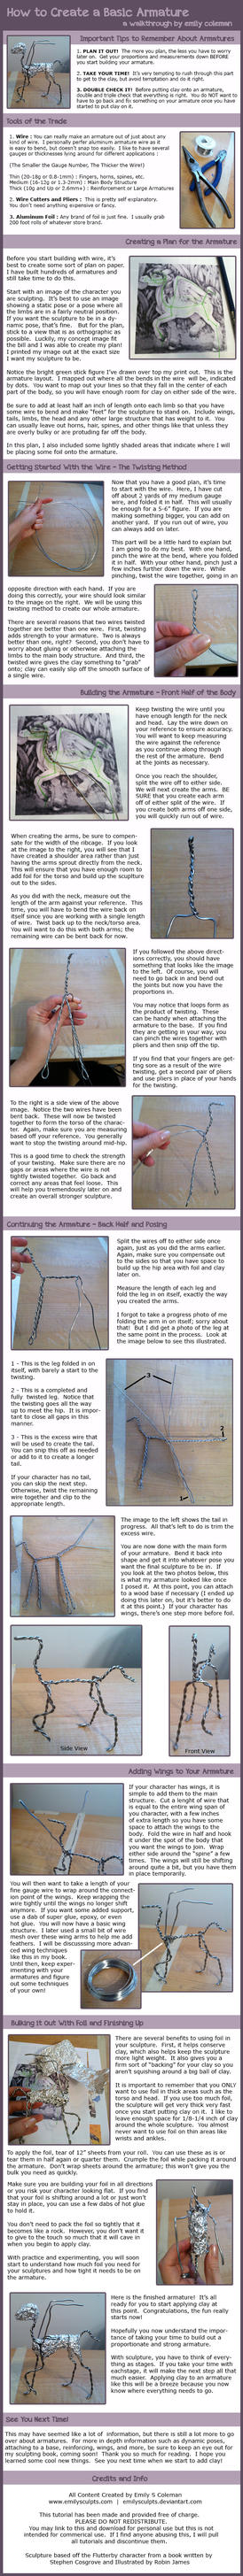 Tutorial : Building an Armature for a Sculpture by emilySculpts